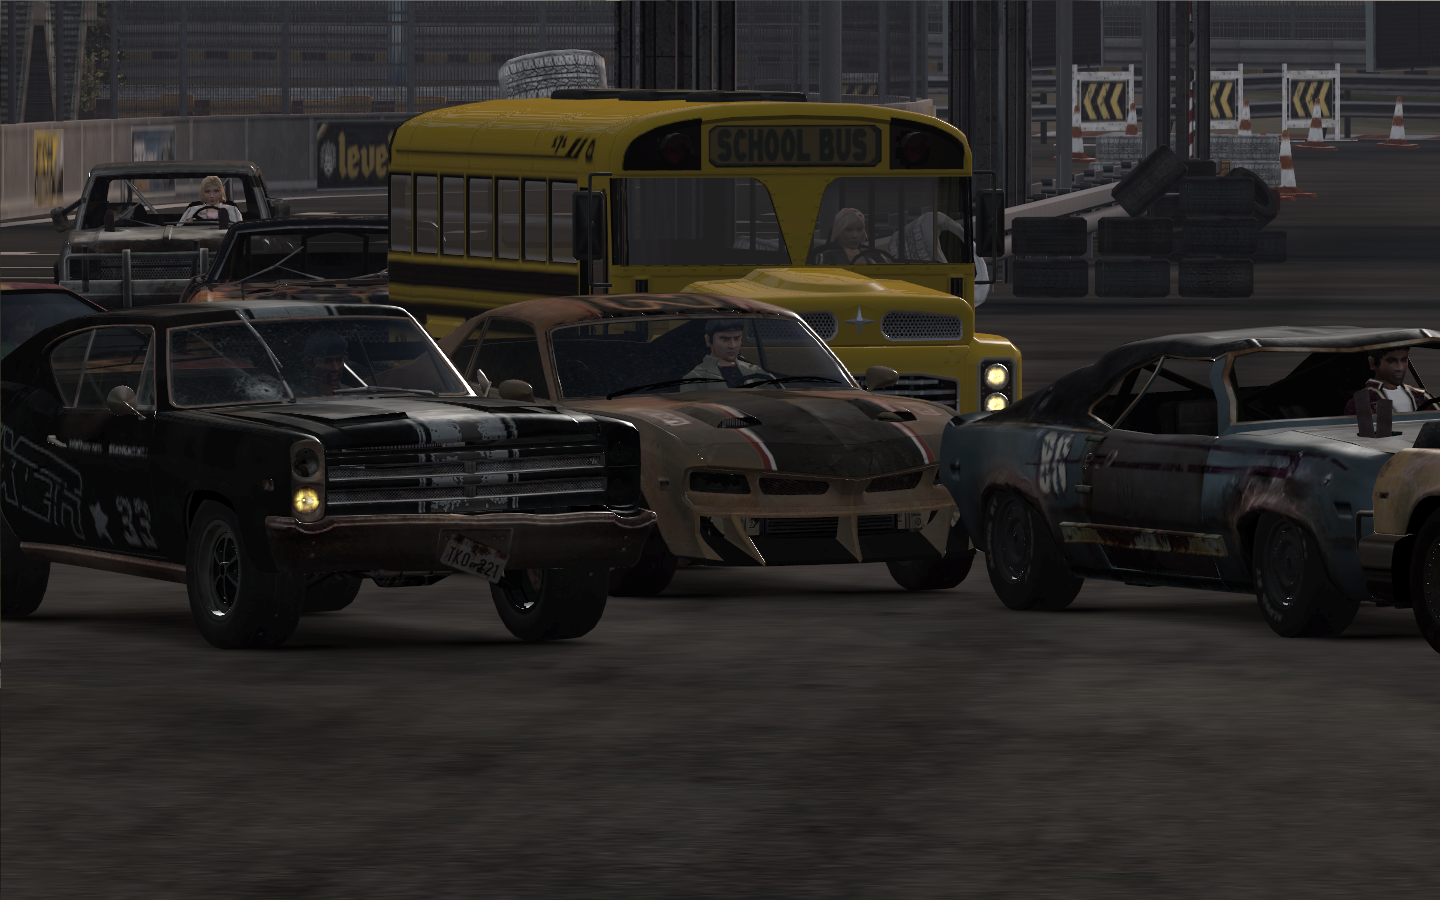 FlatOut: Ultimate Carnage Windows Bonus cars like the school bus can be unlocked with carnage mode